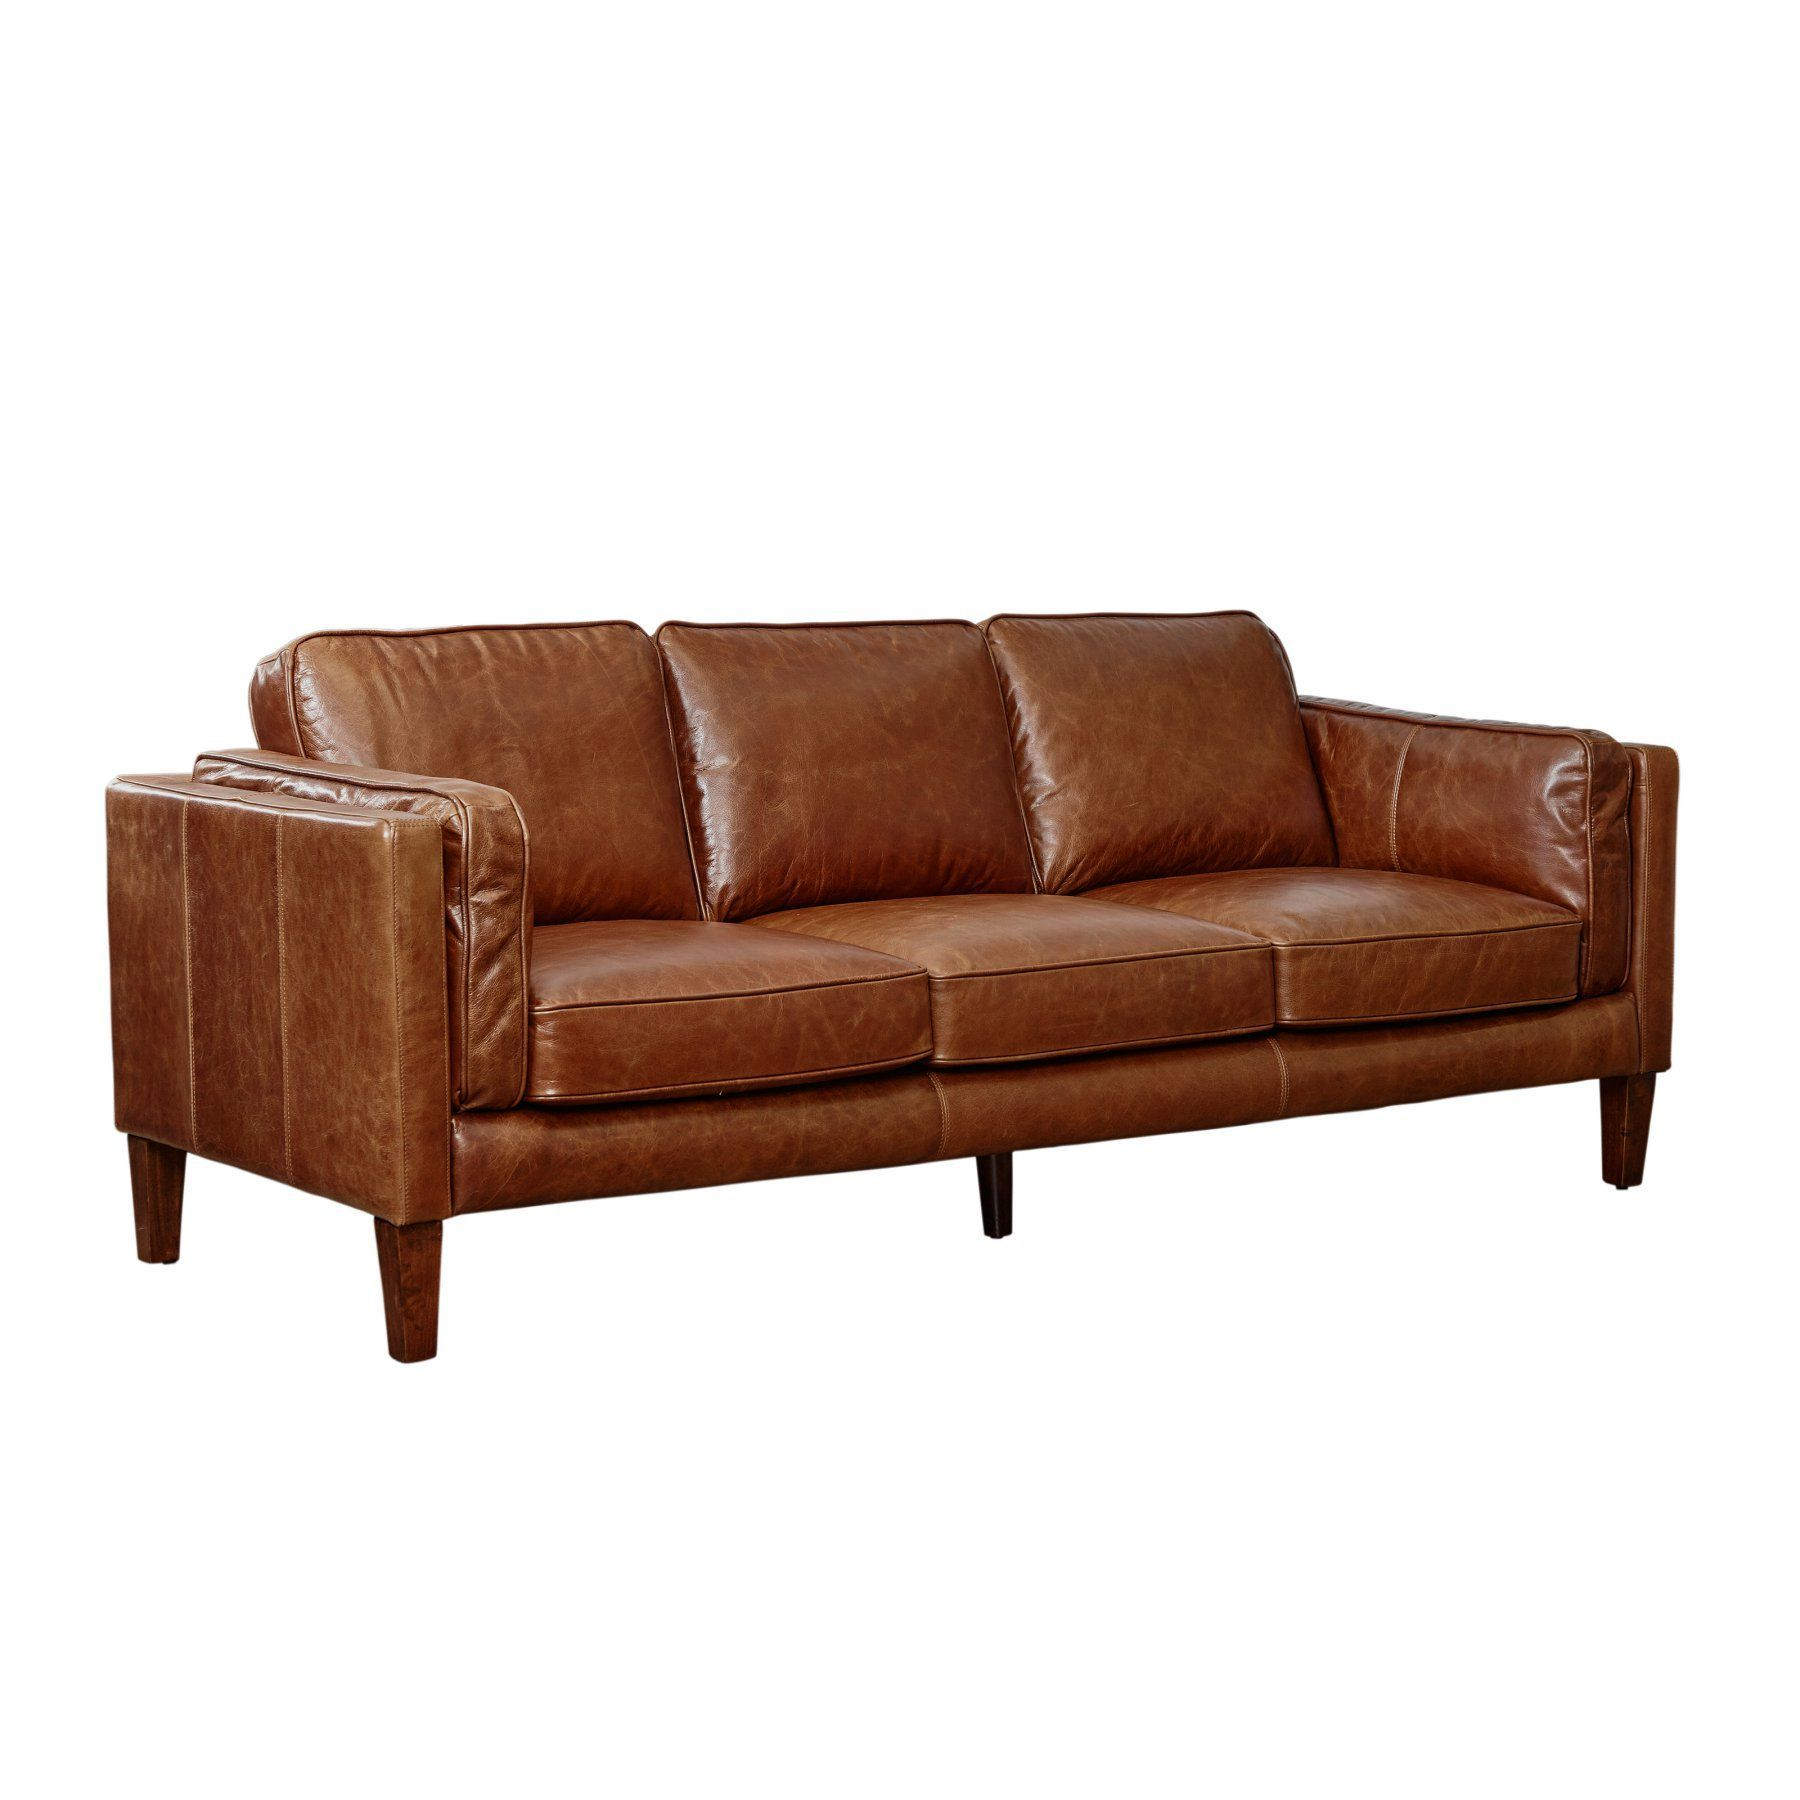 Phenomenal Lazzaro Leather Berkley Sofa 1702 30 9021 Products Gamerscity Chair Design For Home Gamerscityorg